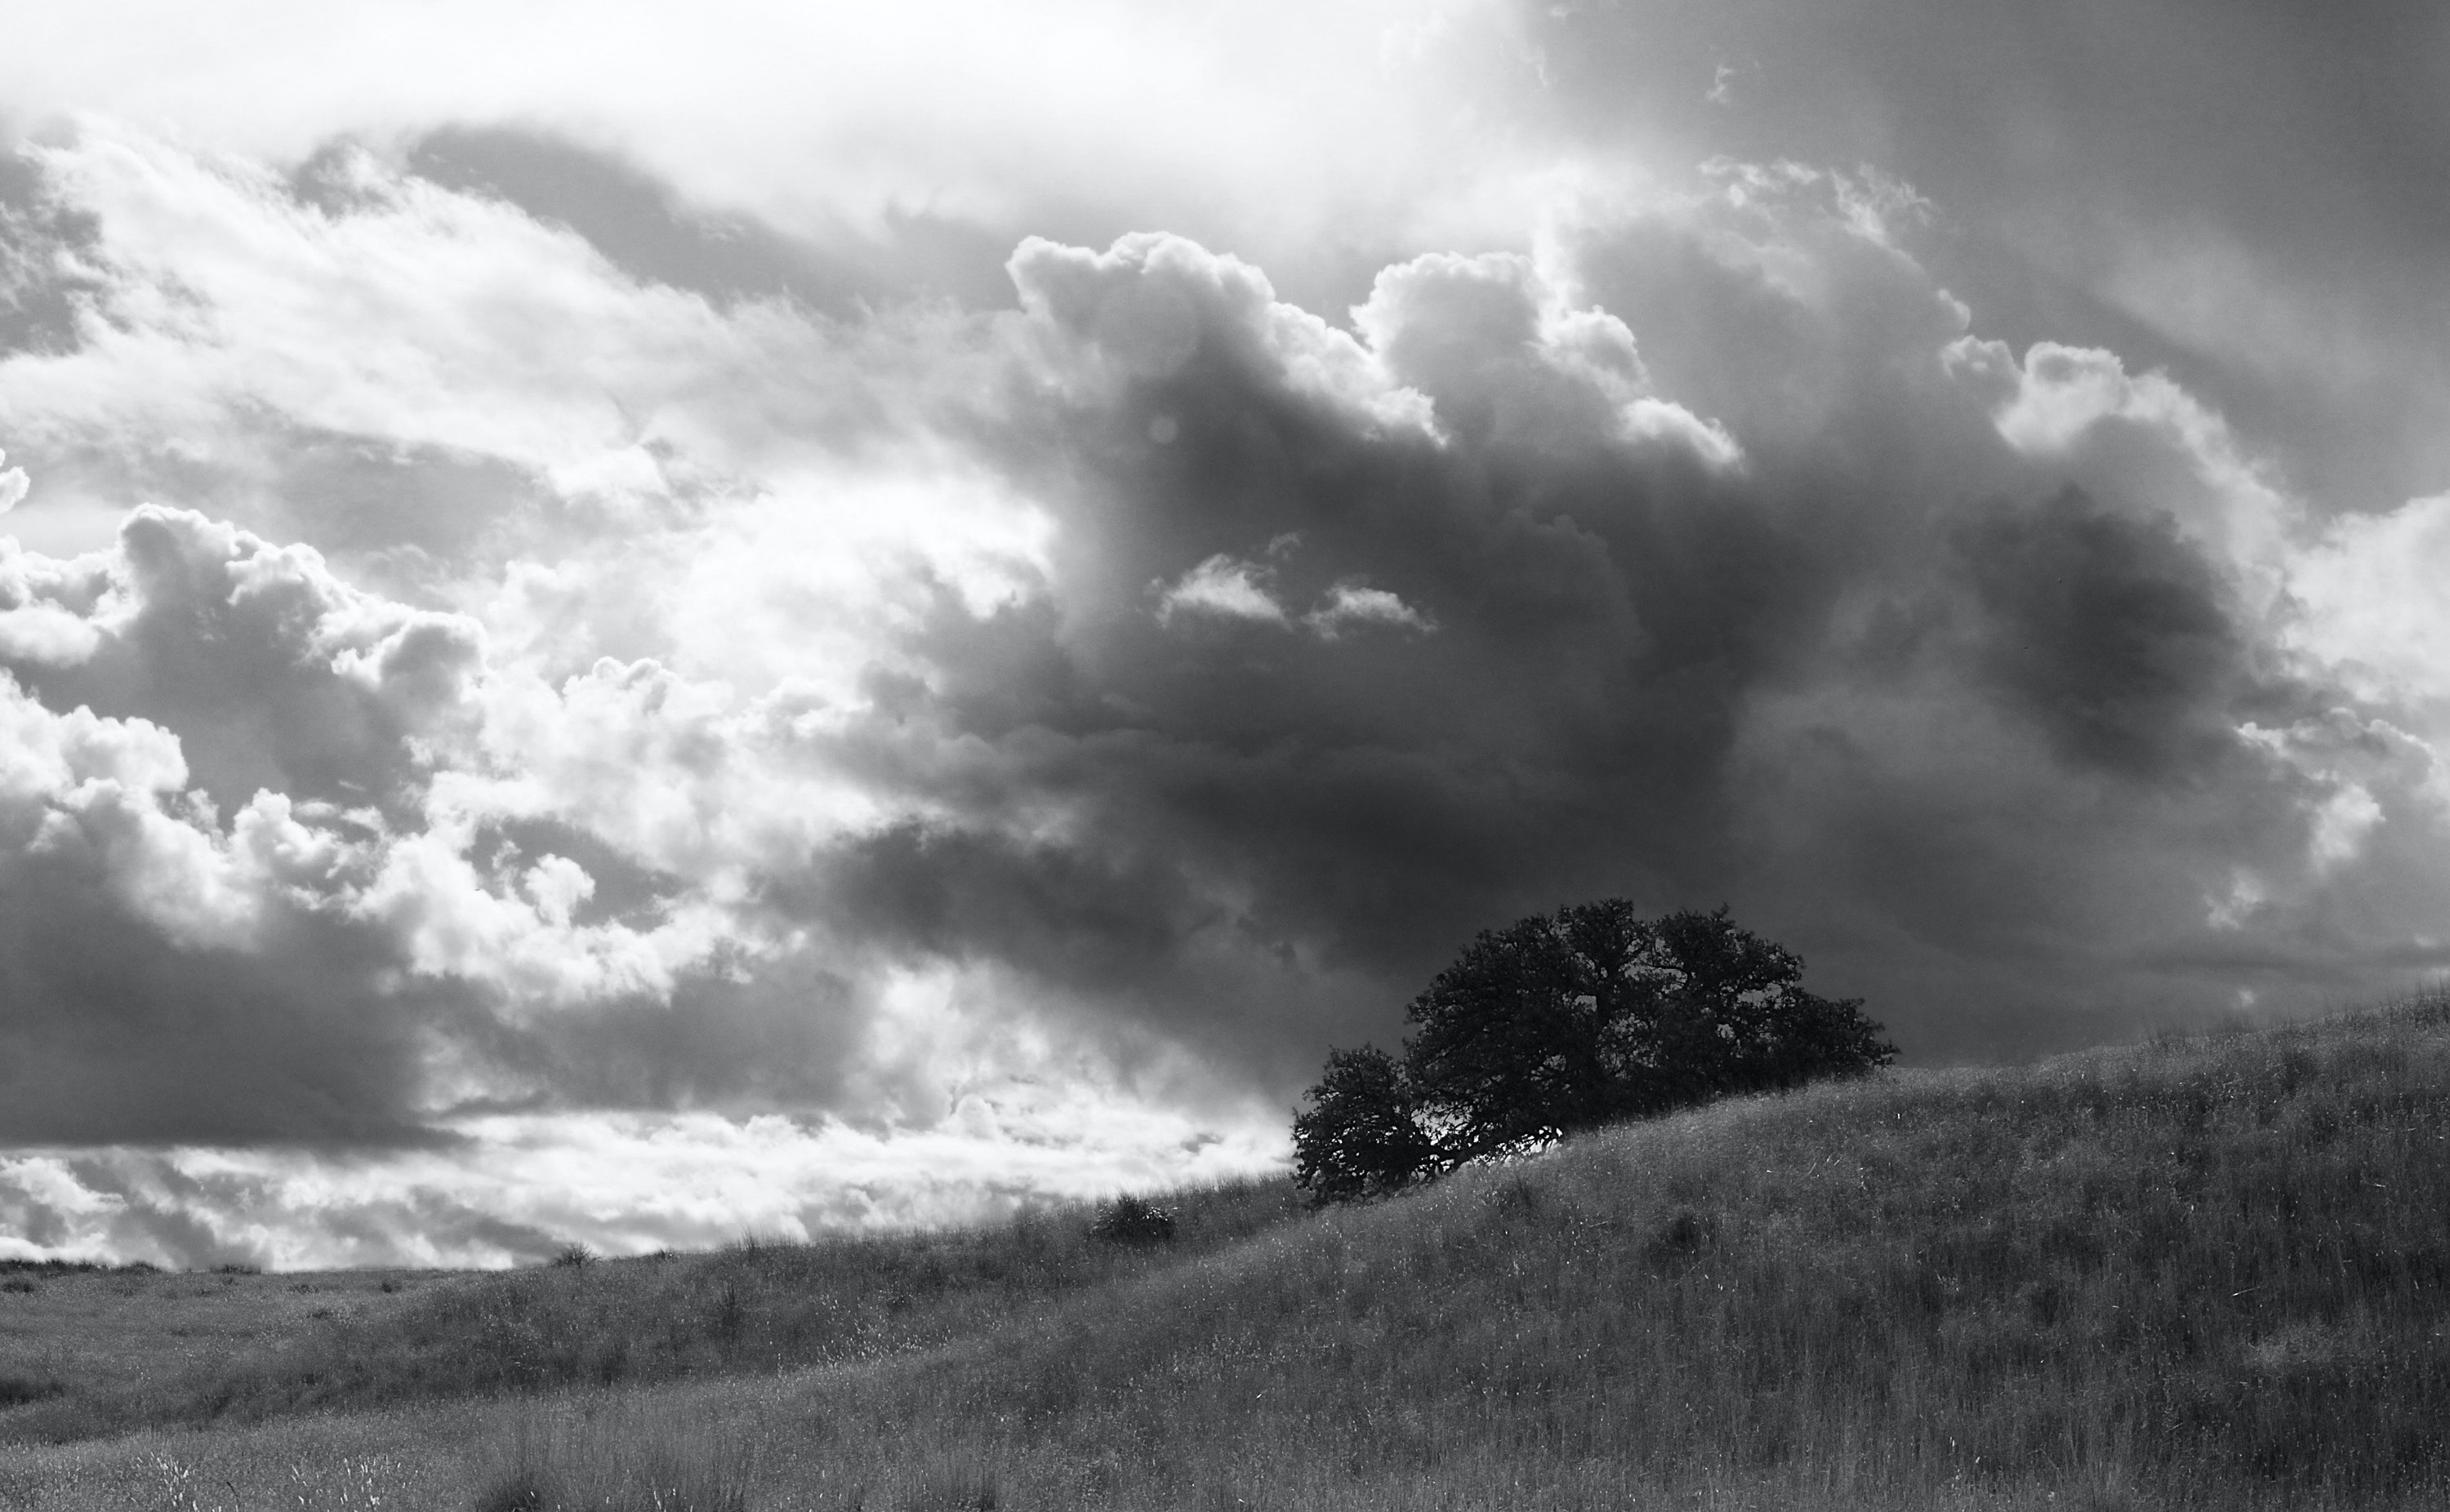 White And Yellow Cloudy Sky Over Farm Lands 183 Free Stock Photo